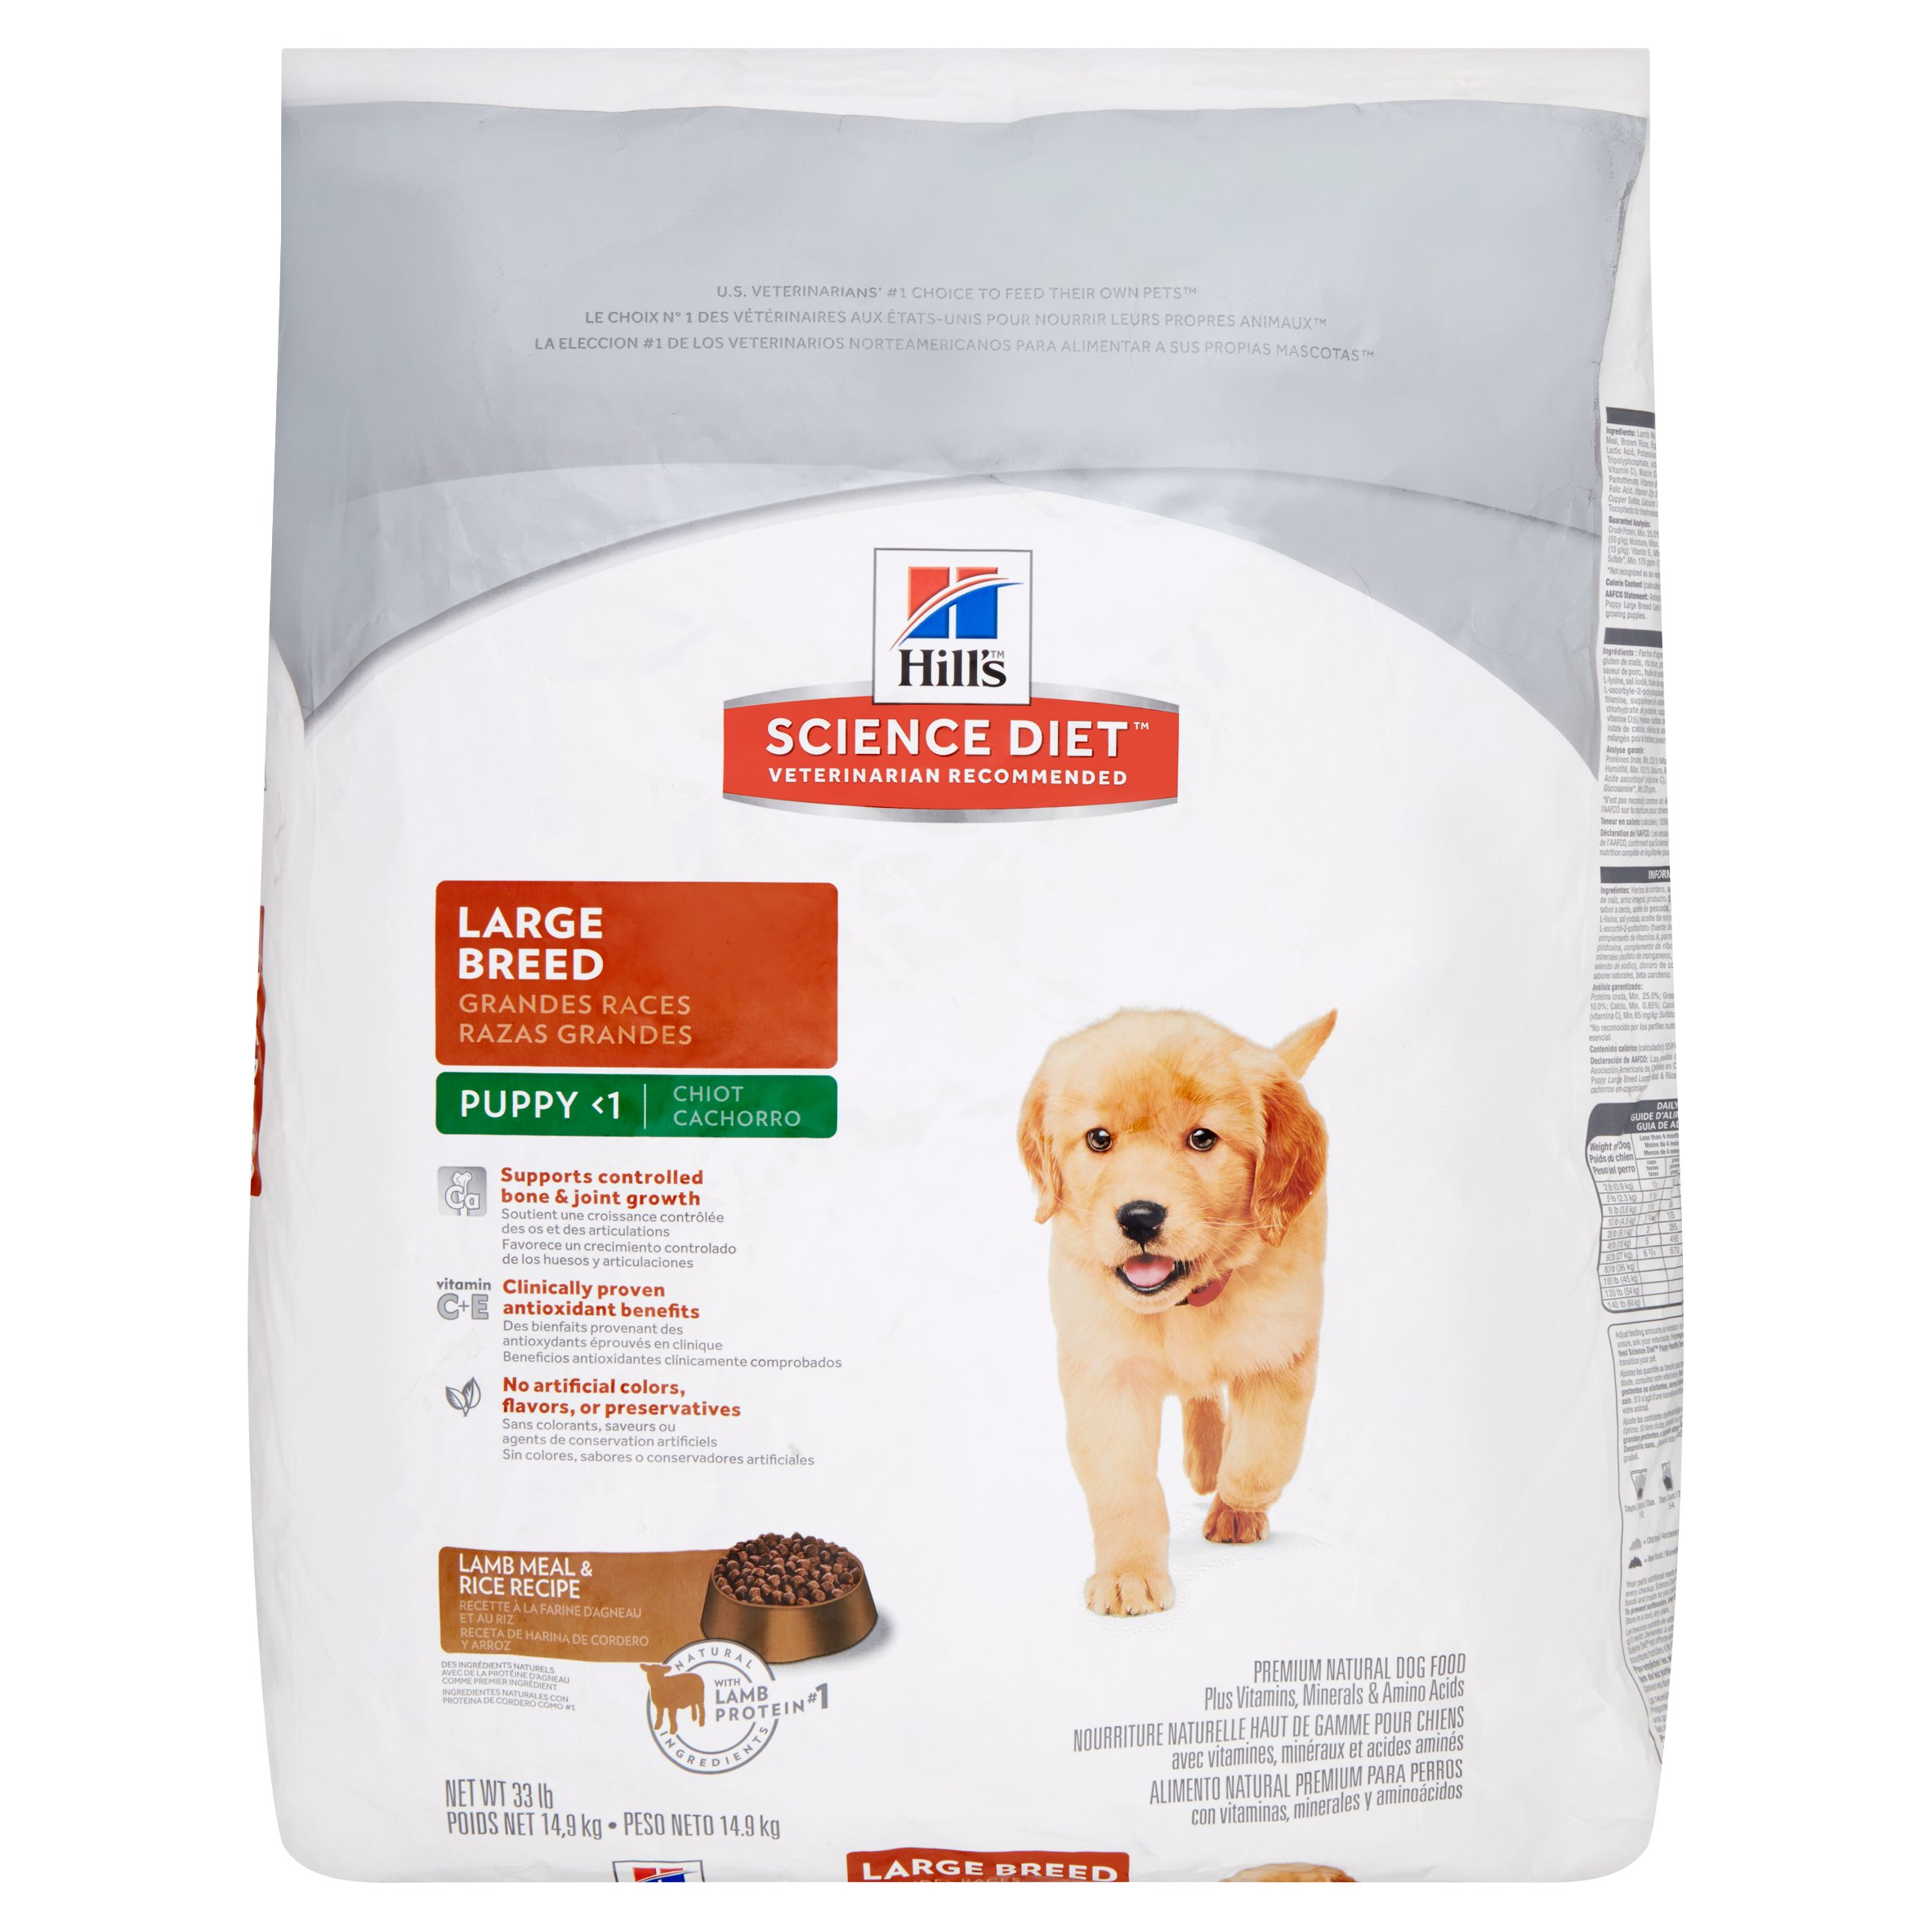 Hill's Science Diet Puppy Large Breed Lamb Meal & Rice Recipe Dry Dog Food, 33 lb bag